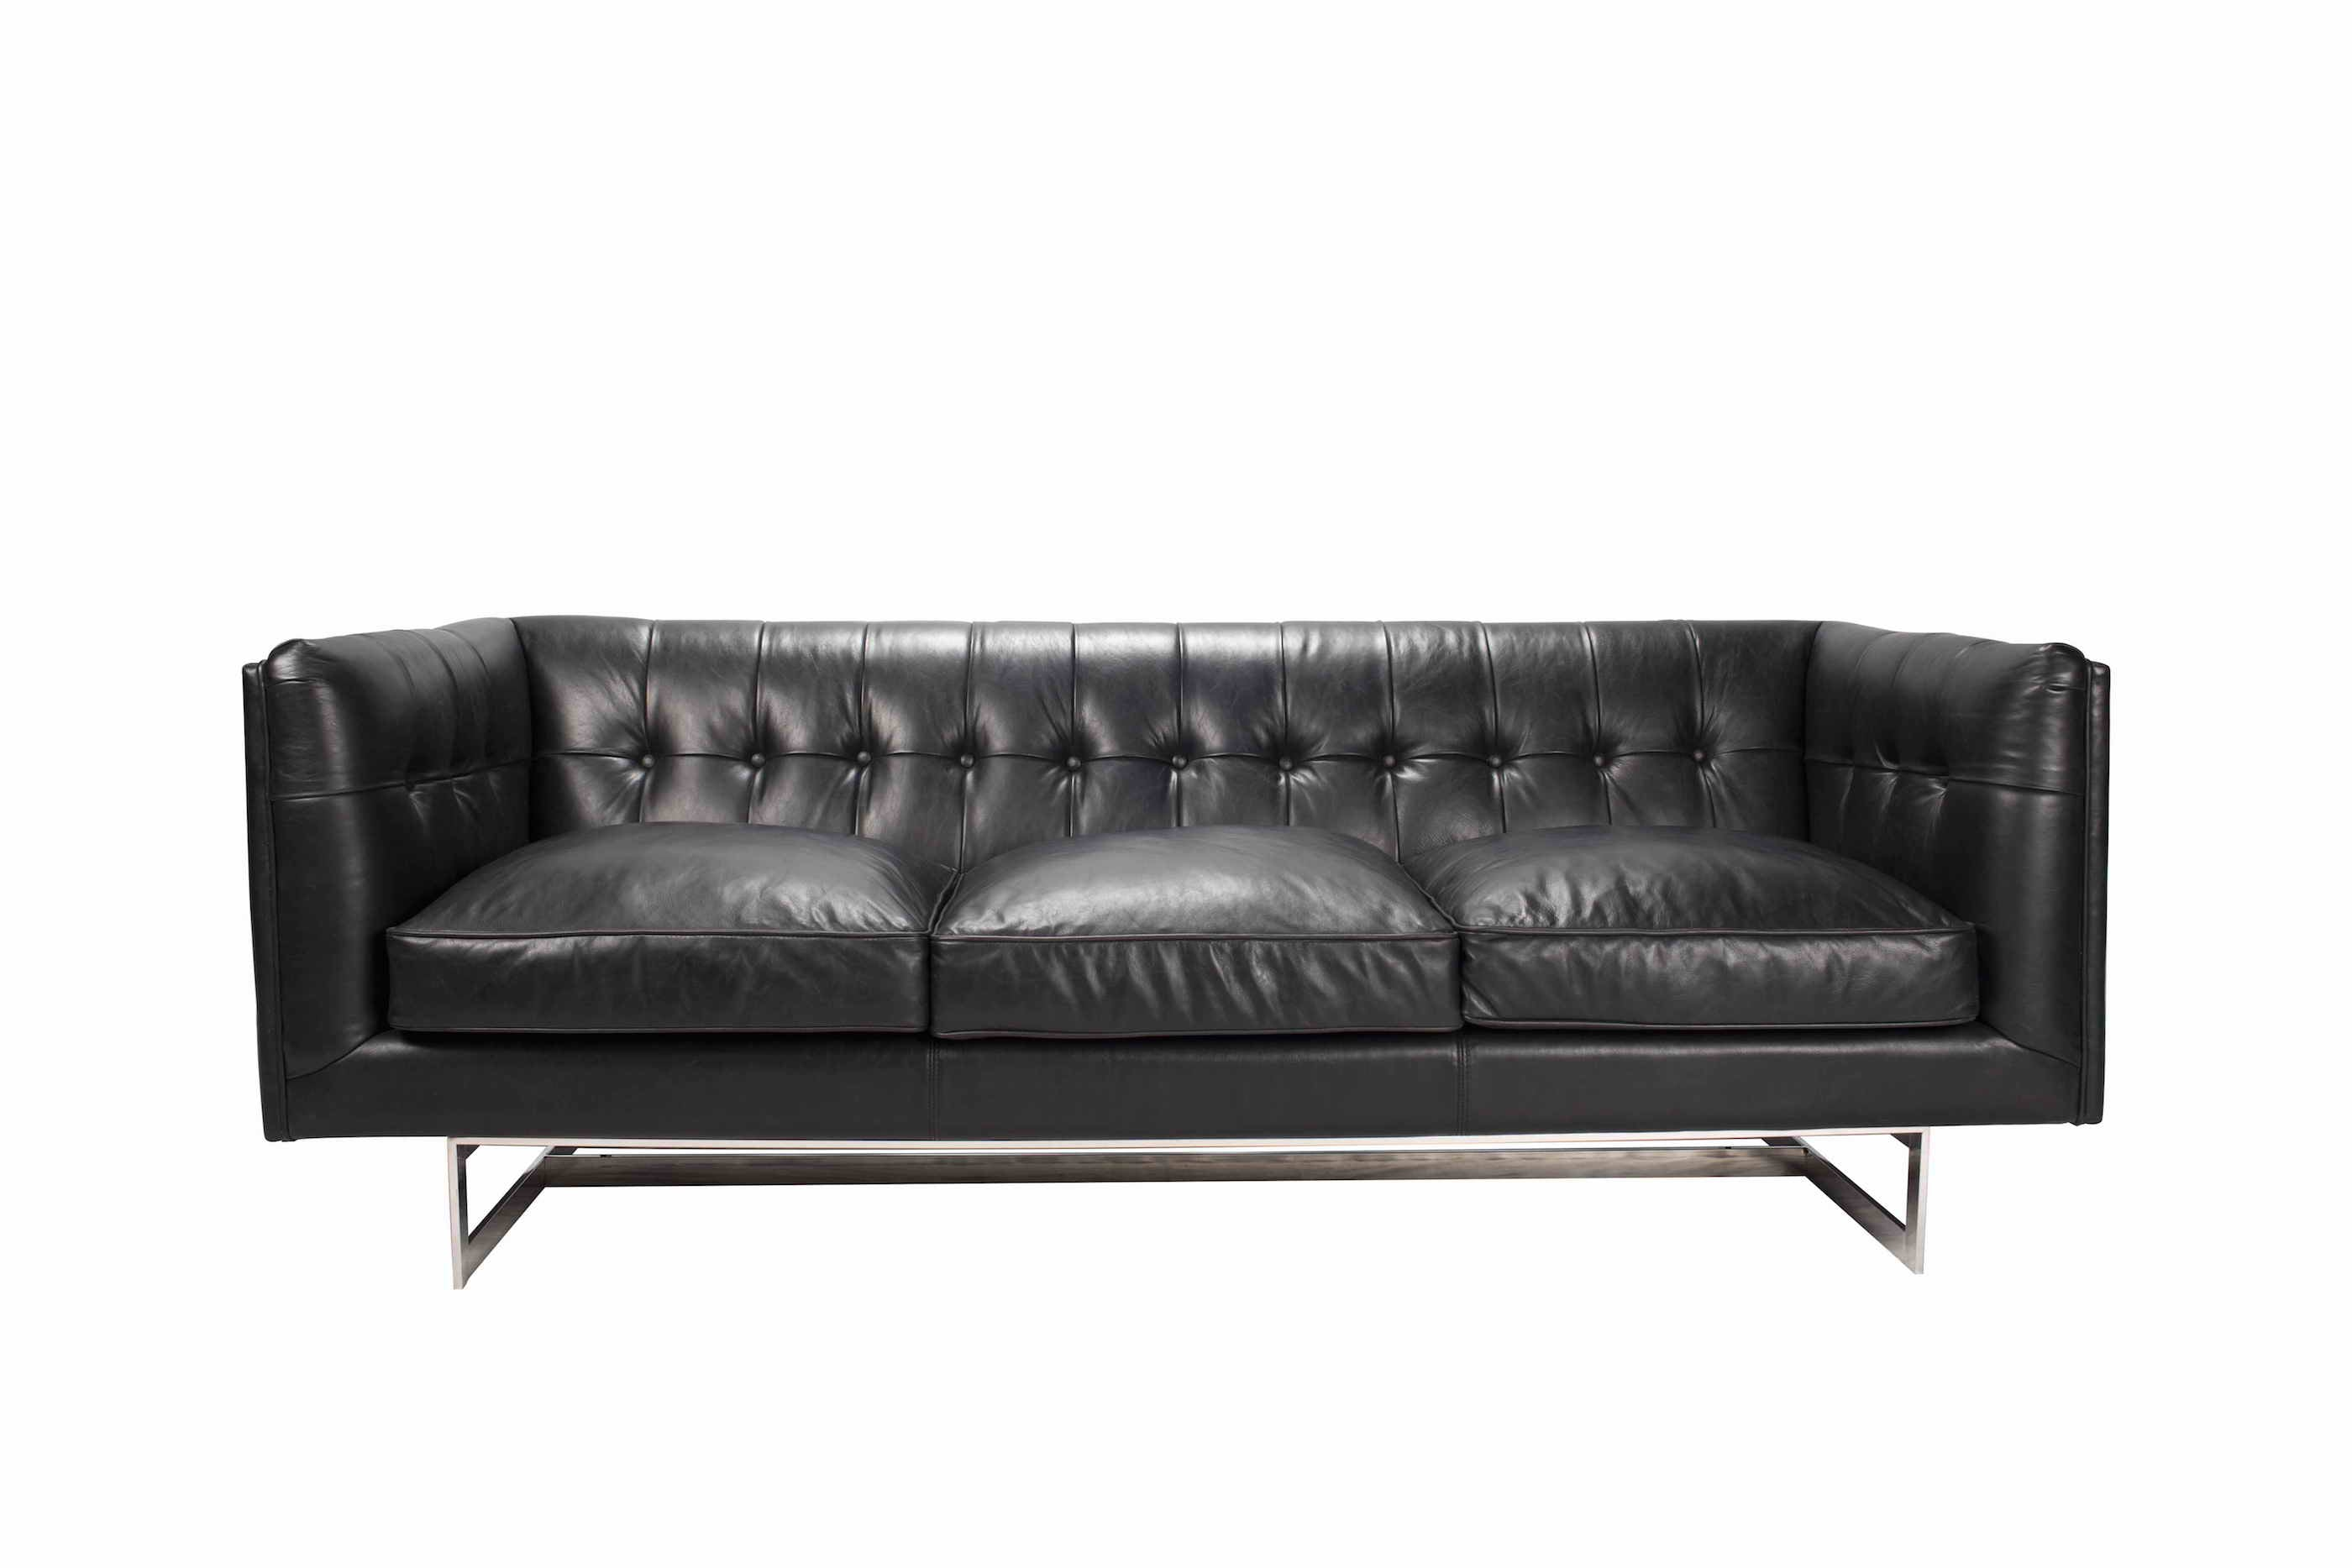 FISTRAL TUFTED SOFA IN TOP GRAIN LEATHER WITH STAINLESS BASE